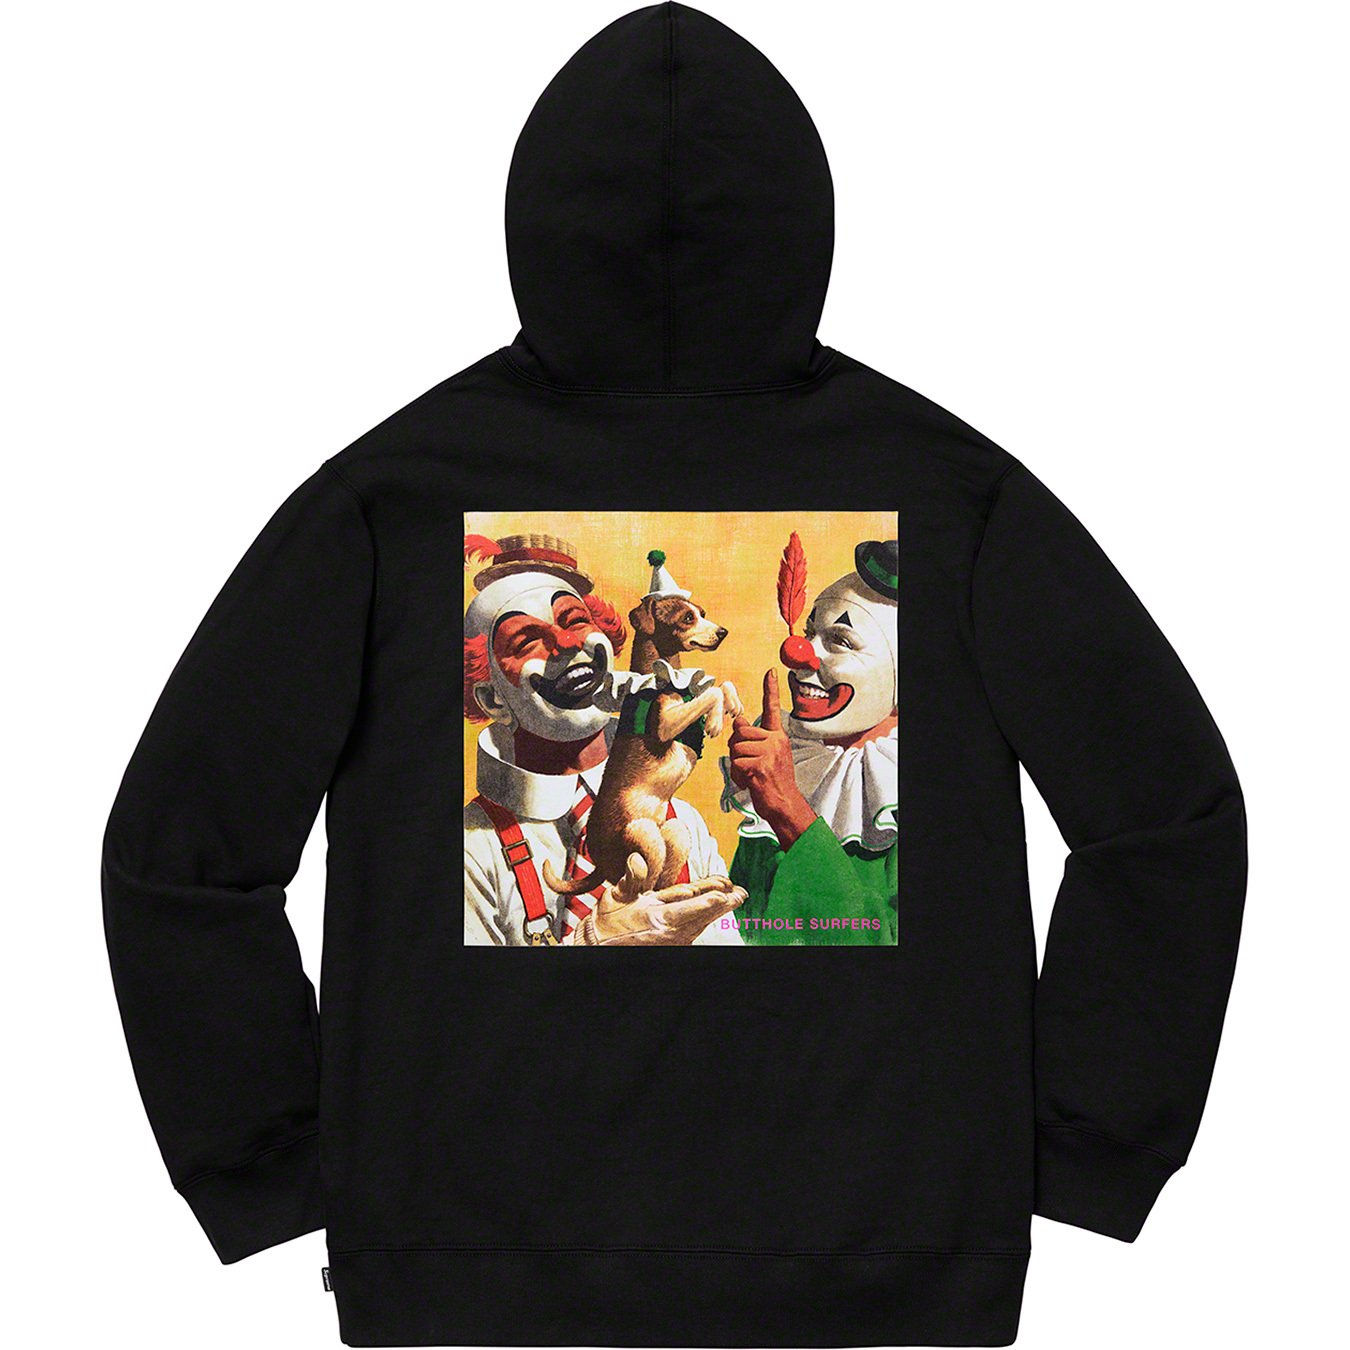 supreme-butthole-surfers-21ss-collaboration-release-20210703-week19-hooded-sweatshirt